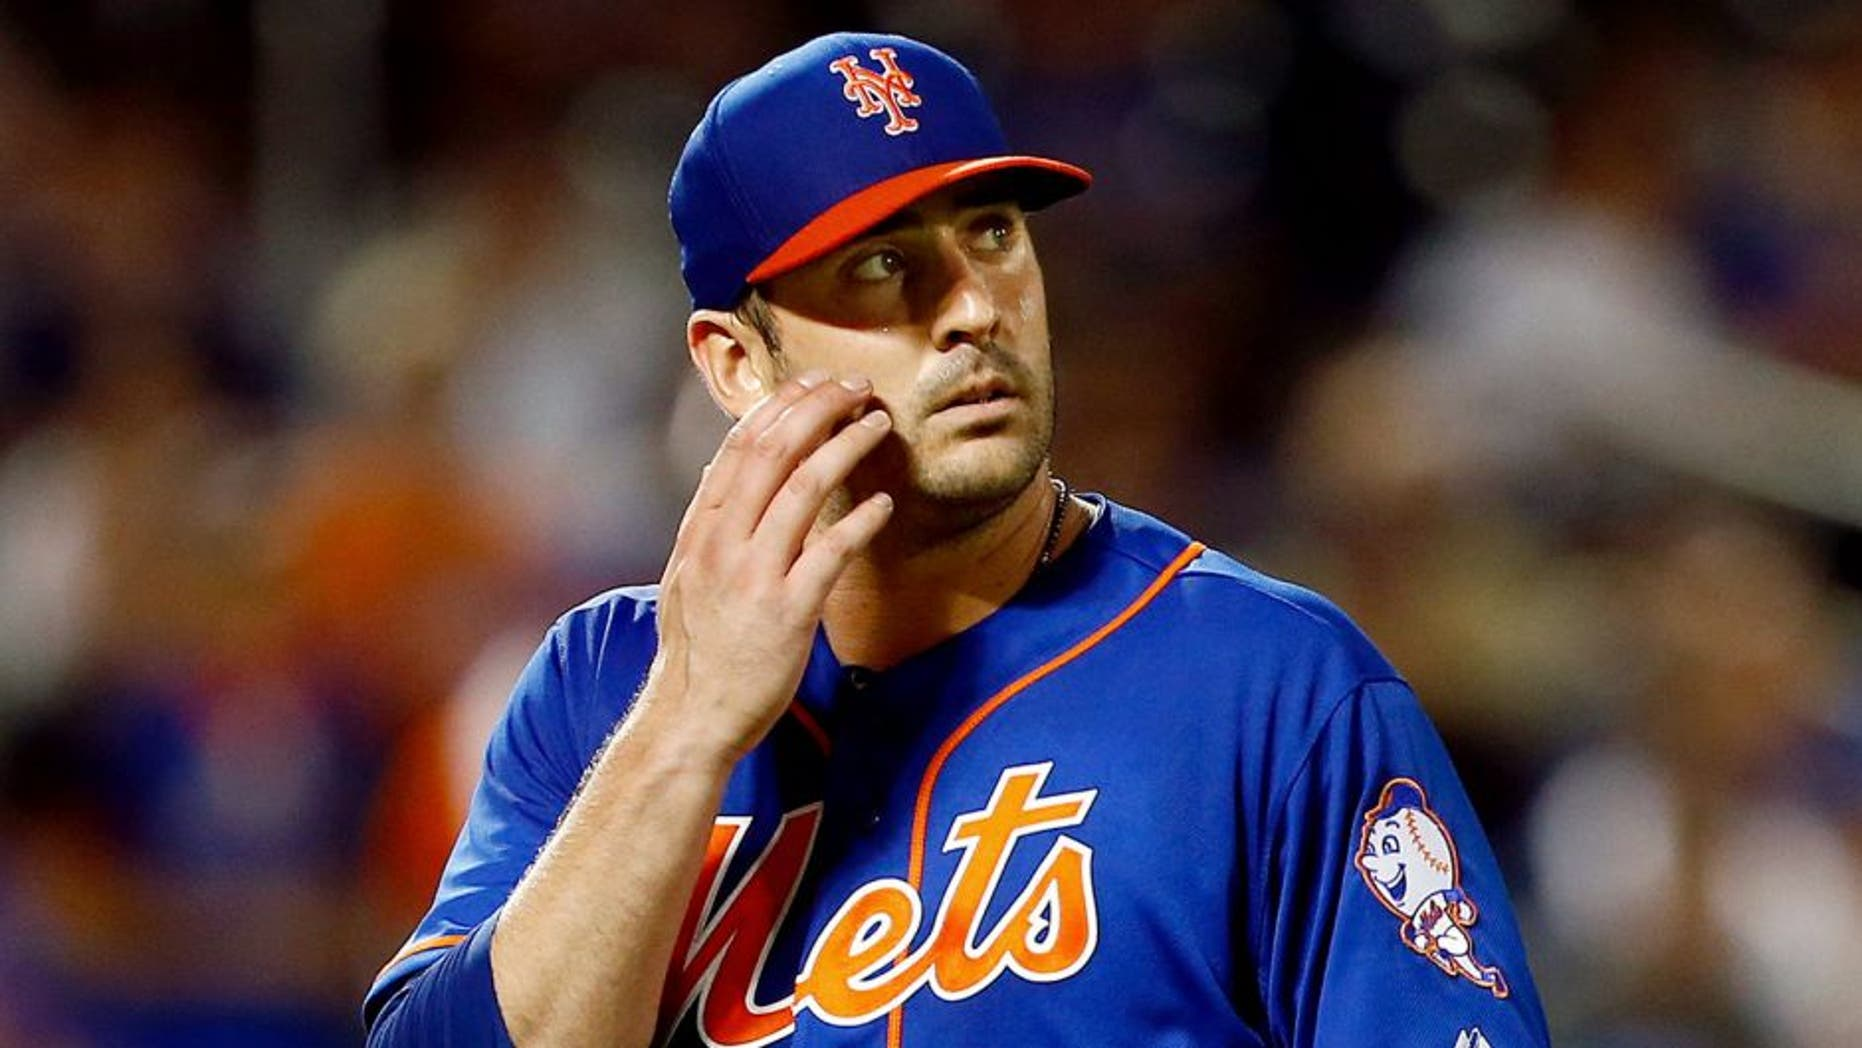 NEW YORK, NY - MAY 29: Matt Harvey #33 of the New York Mets walks off the mound against the Miami Marlins during a game on May 29, 2015 at Citi Field in the Flushing neighborhood of the Queens borough of New York City. (Photo by Rich Schultz/Getty Images)